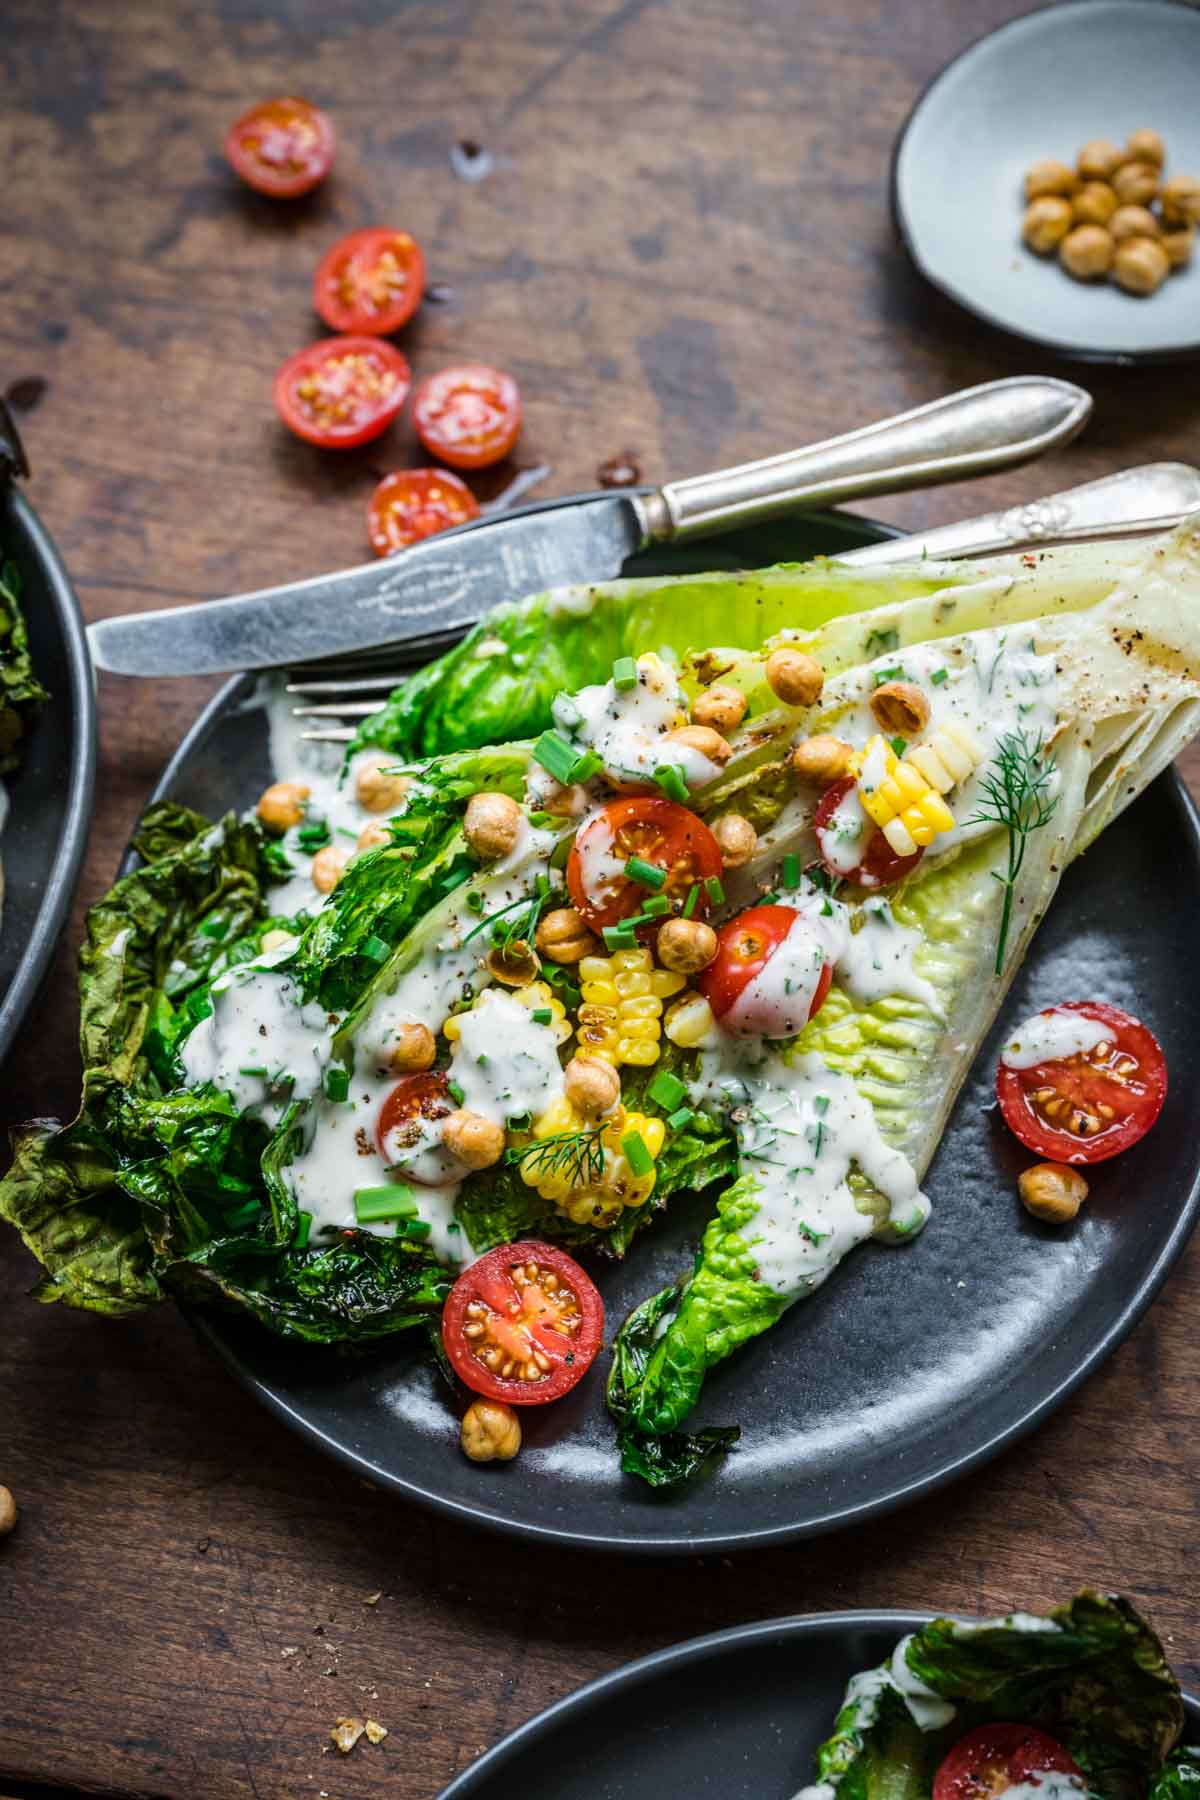 Overhead view of grilled romaine with corn, tomatoes, and vegan ranch dressing.